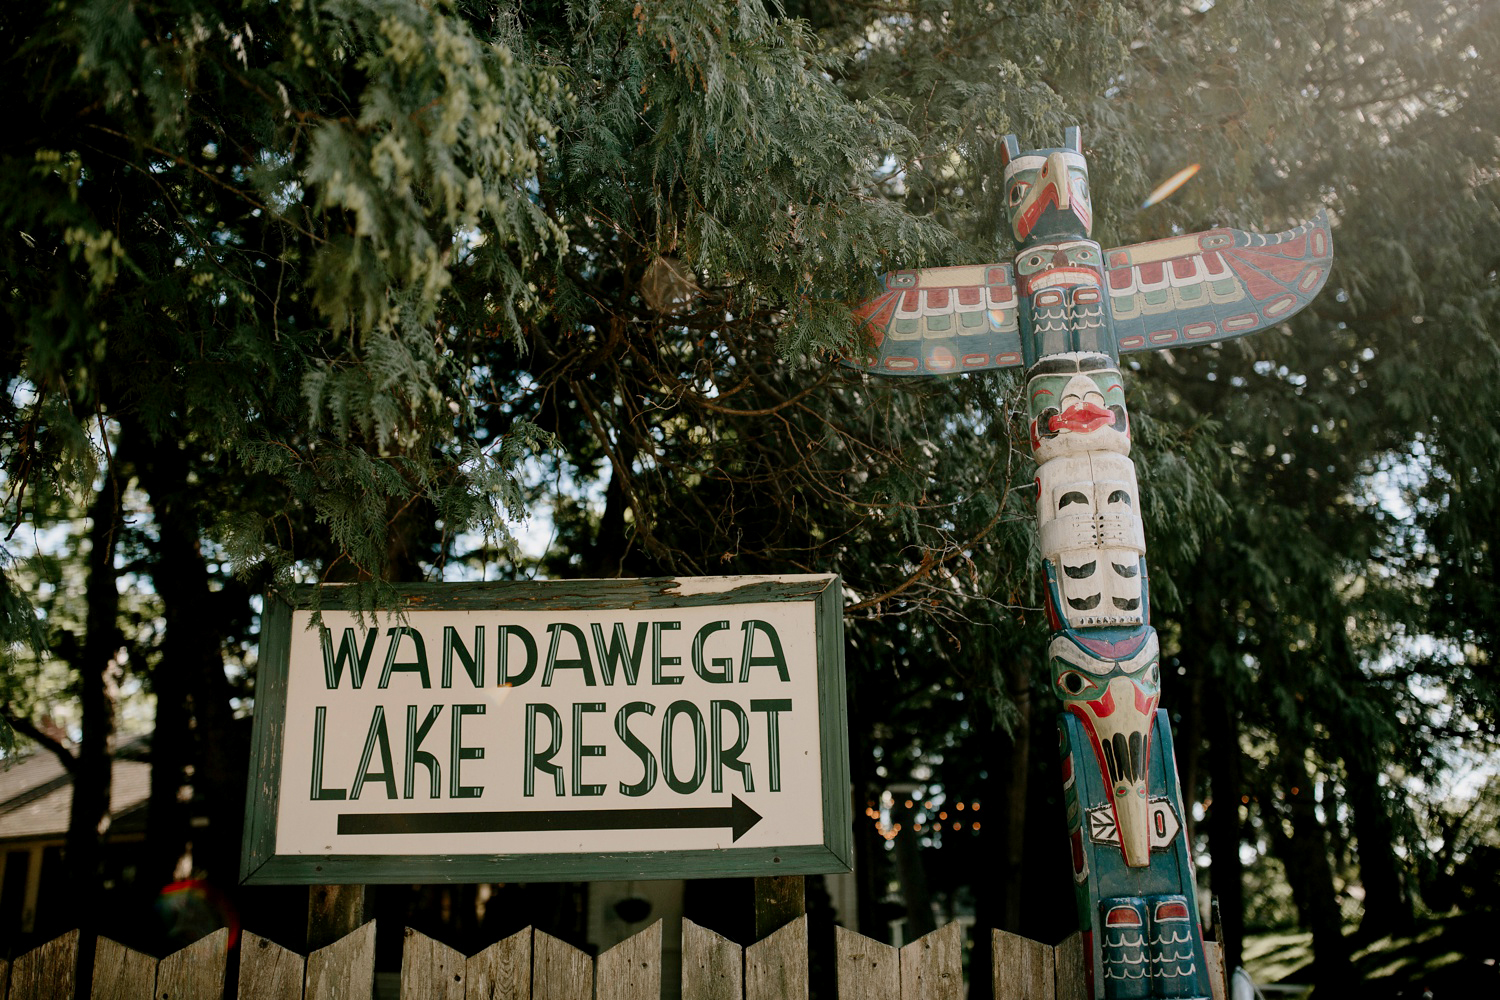 Wandawega Lake Resort